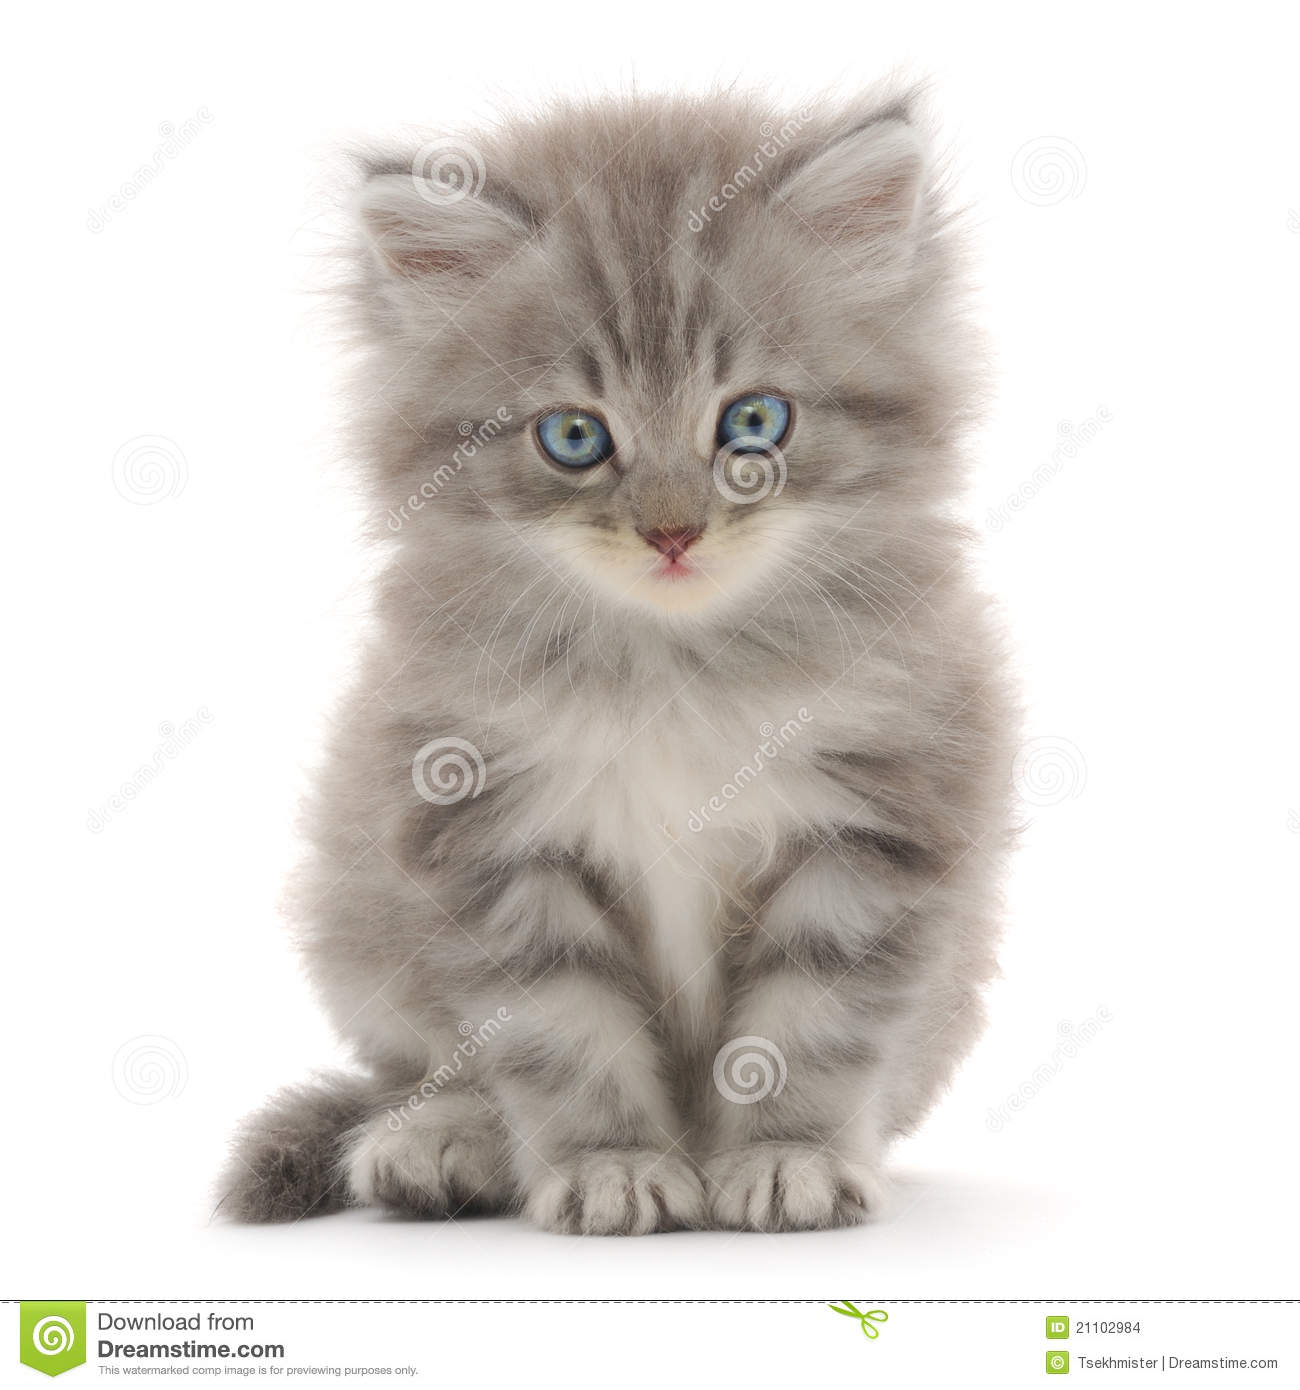 Cute Cats And Kittens Wallpaper Hd Cat Themes Kitten On A White Background Stock Images Image 21102984